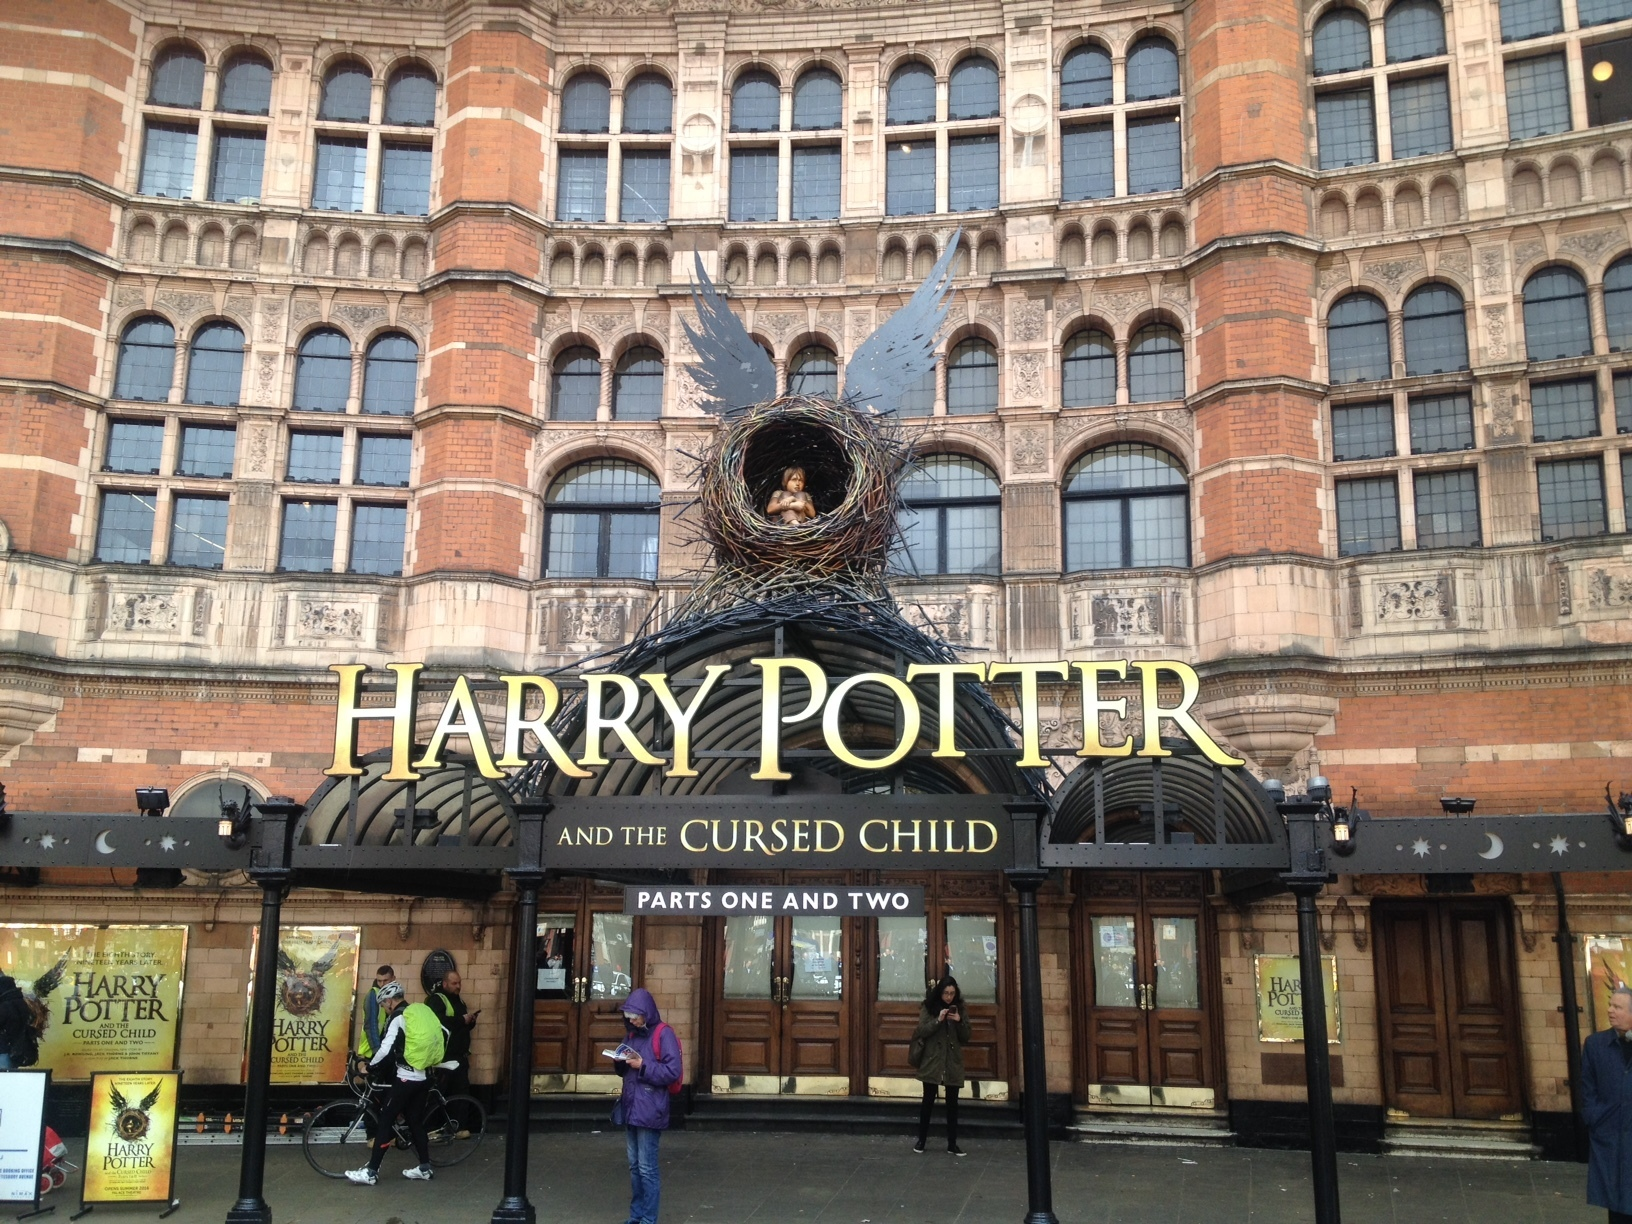 In pictures: backstage at 'Harry Potter and the Cursed Child'